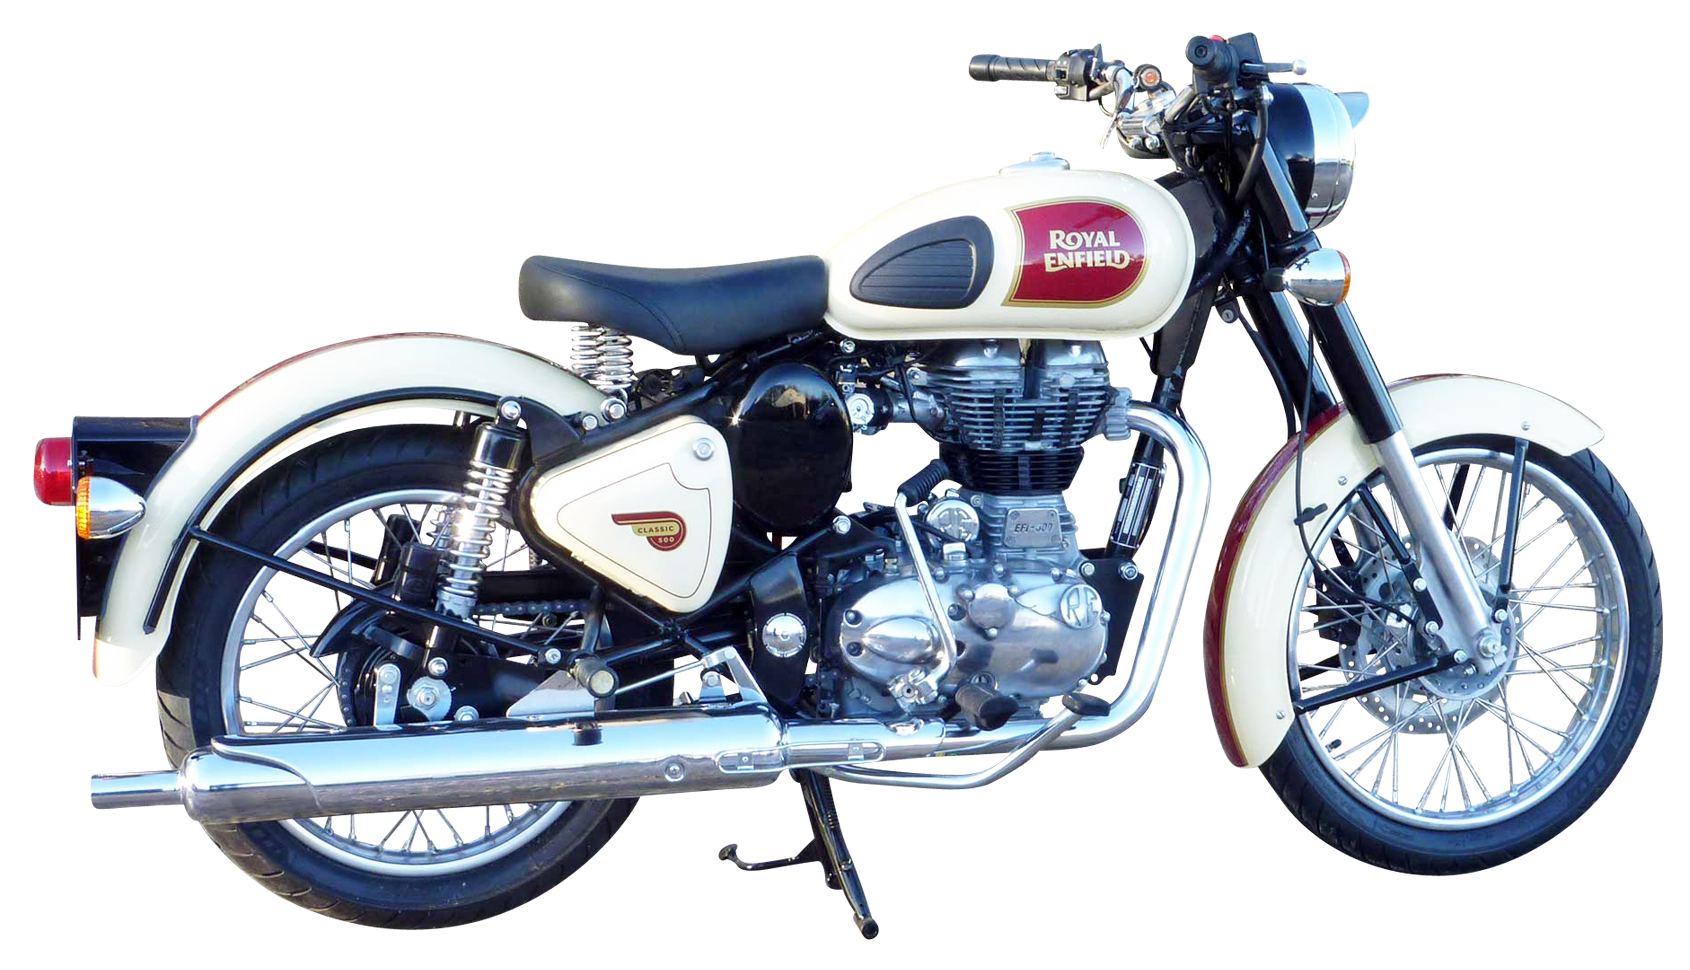 Clipart bike classic. Royal enfield png image